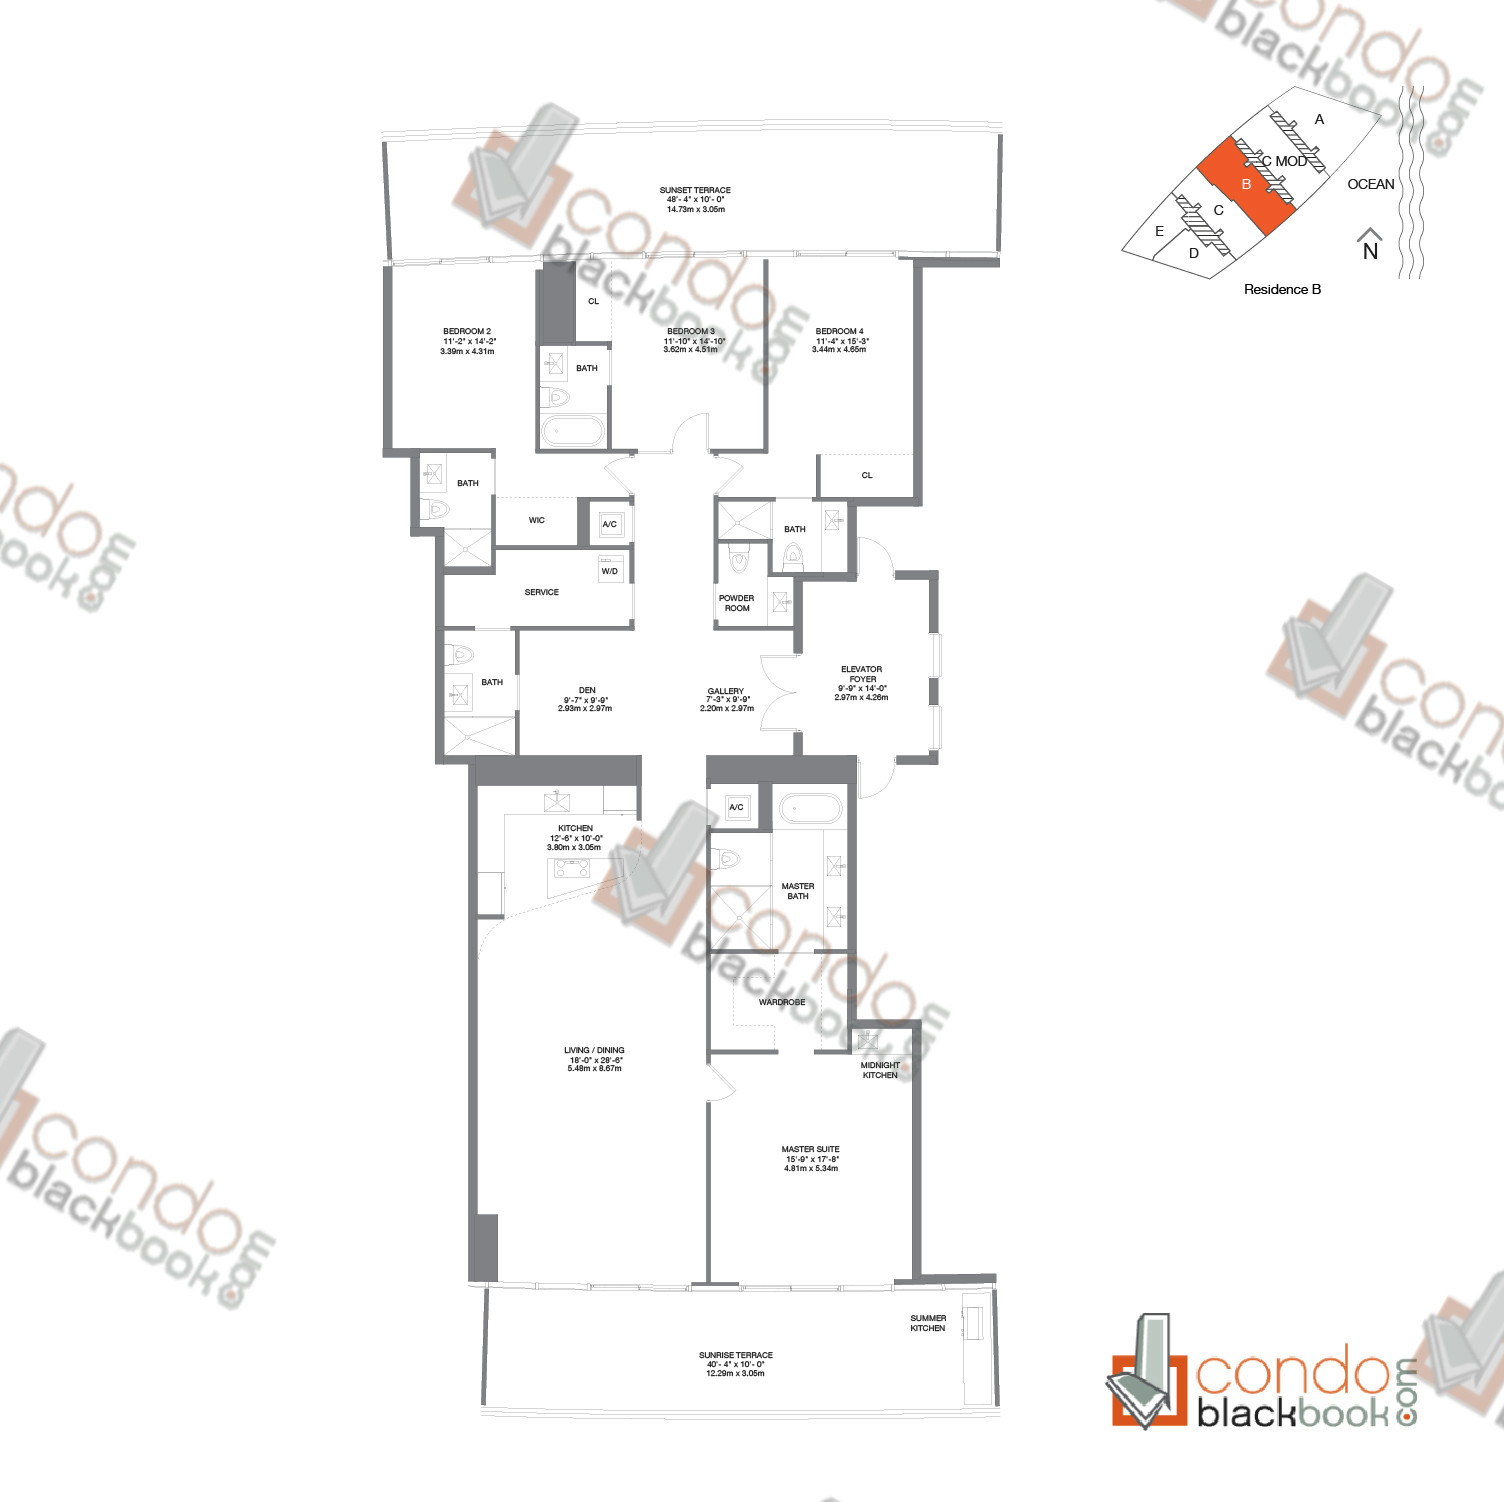 Floor plan for Residences by Armani Casa Sunny Isles Beach, model Residence B, line B, 4/5.5 + den bedrooms, 3,176 sq ft